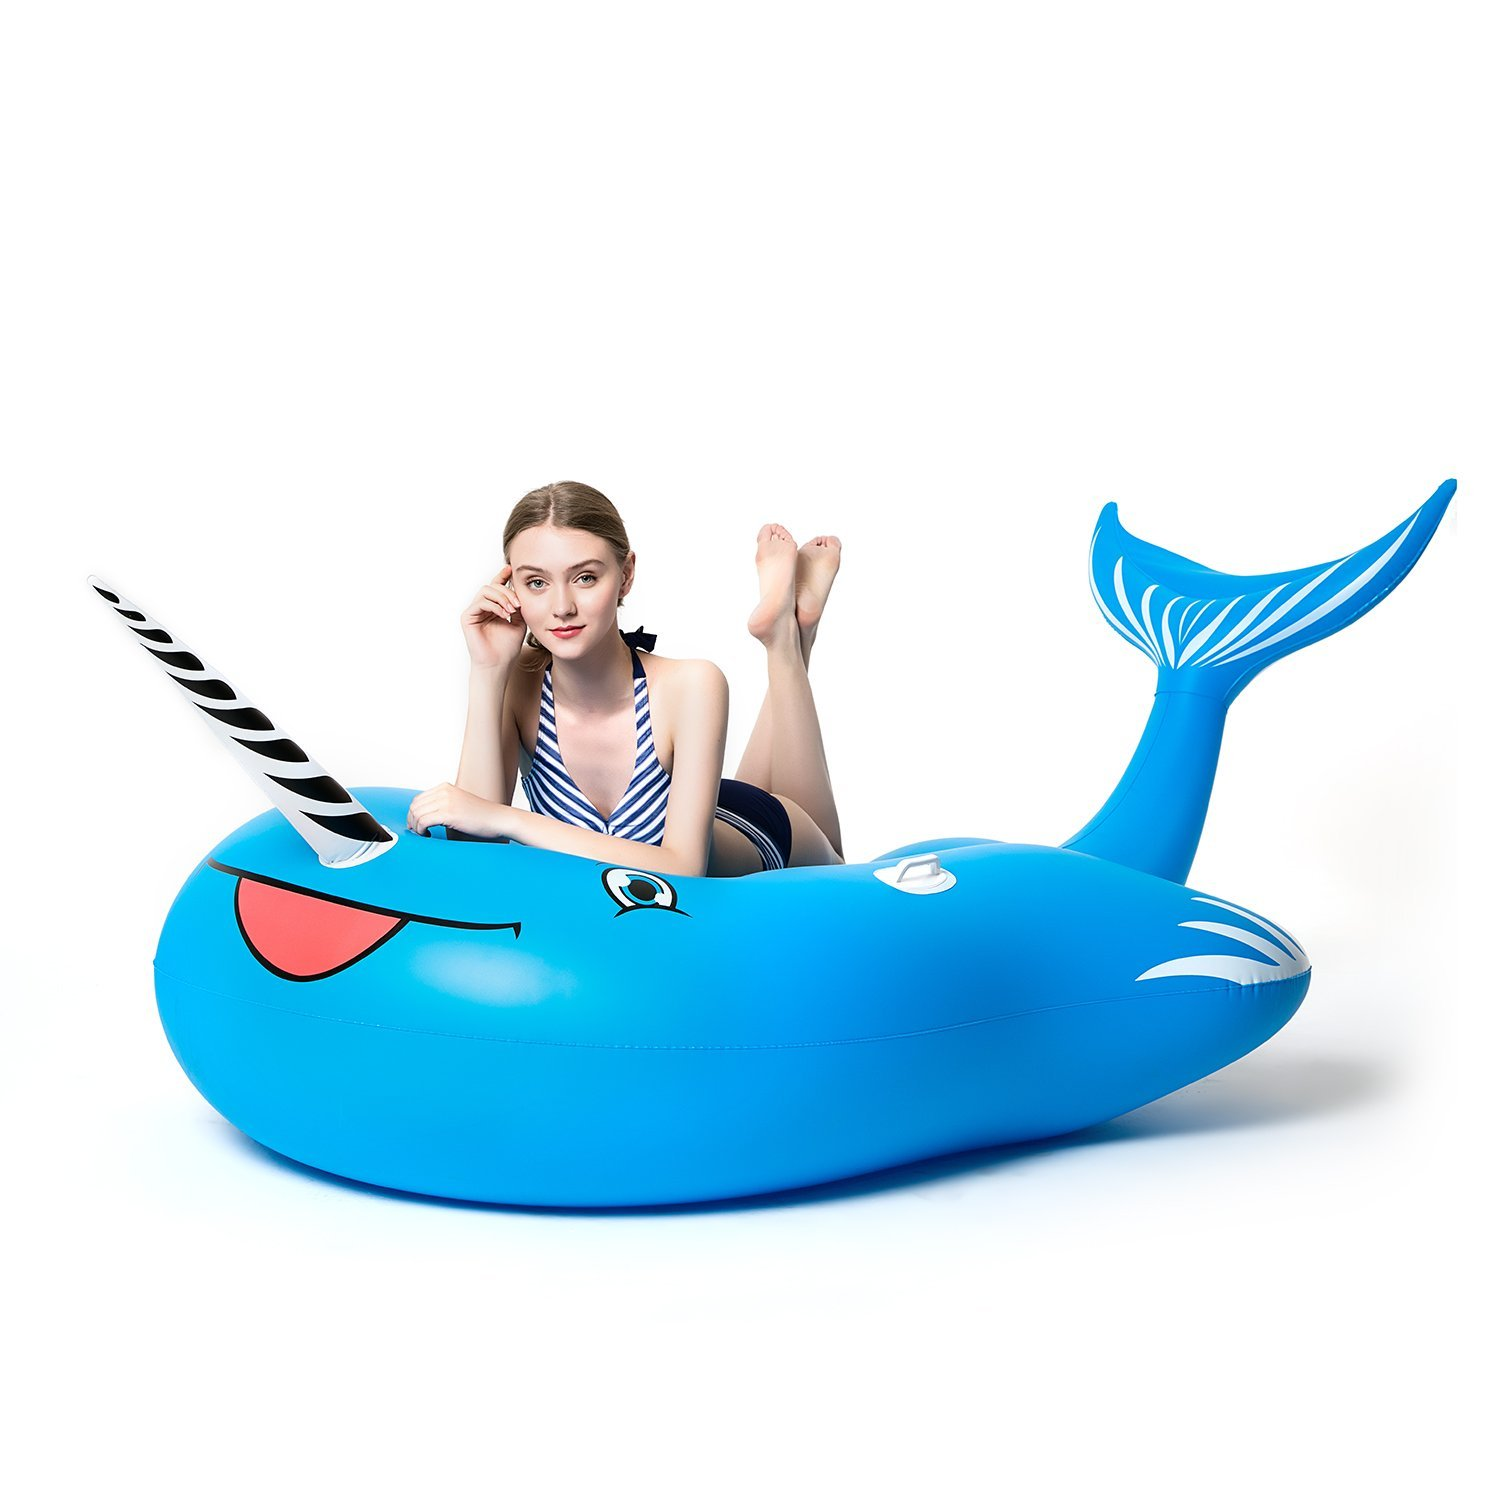 Pool Fun Outdoor Toys & Structures Blowup Whale Inflatable Water Sprinkler For Kids To Garden Hose Pool Toy Kids